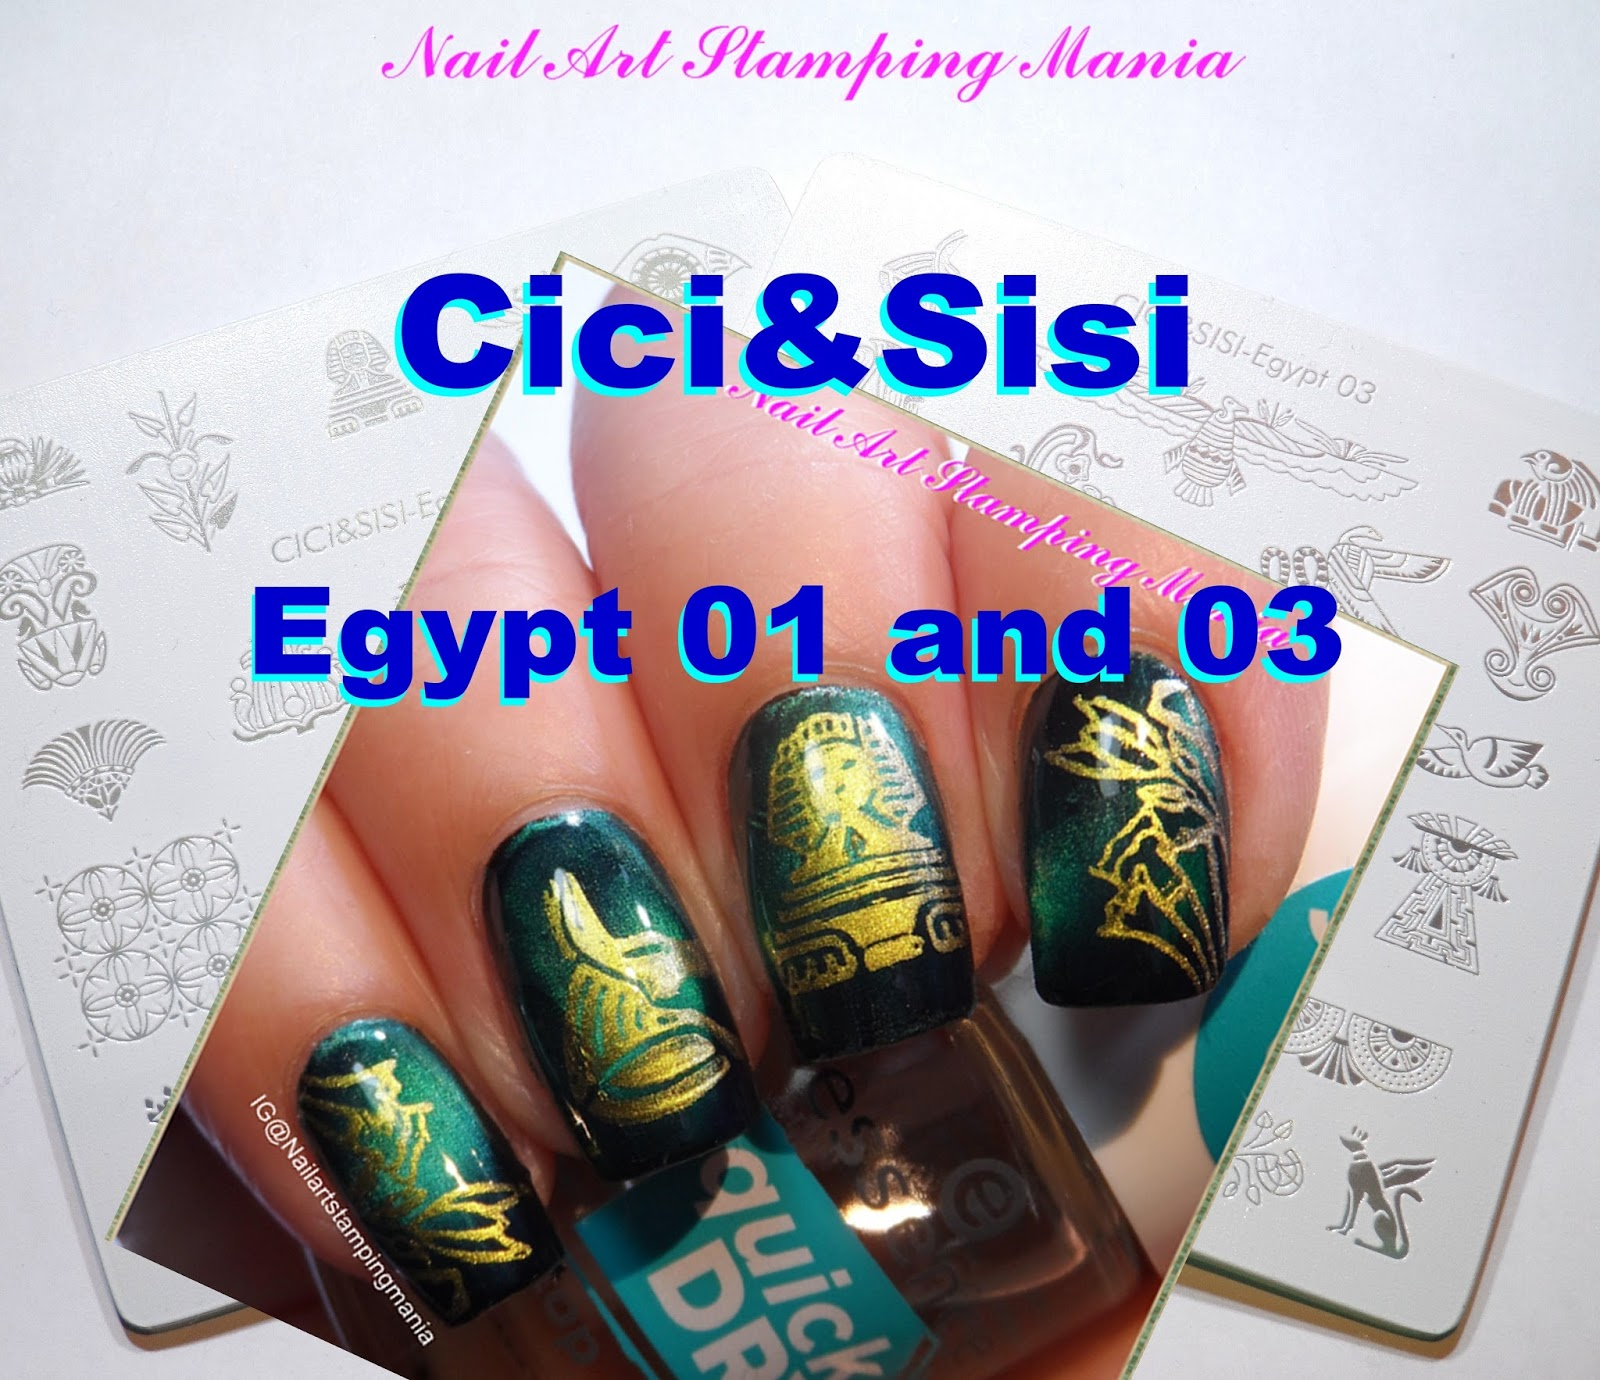 Nail Art Stamping Mania: Magnetic Manicure with Cici&Sisi \